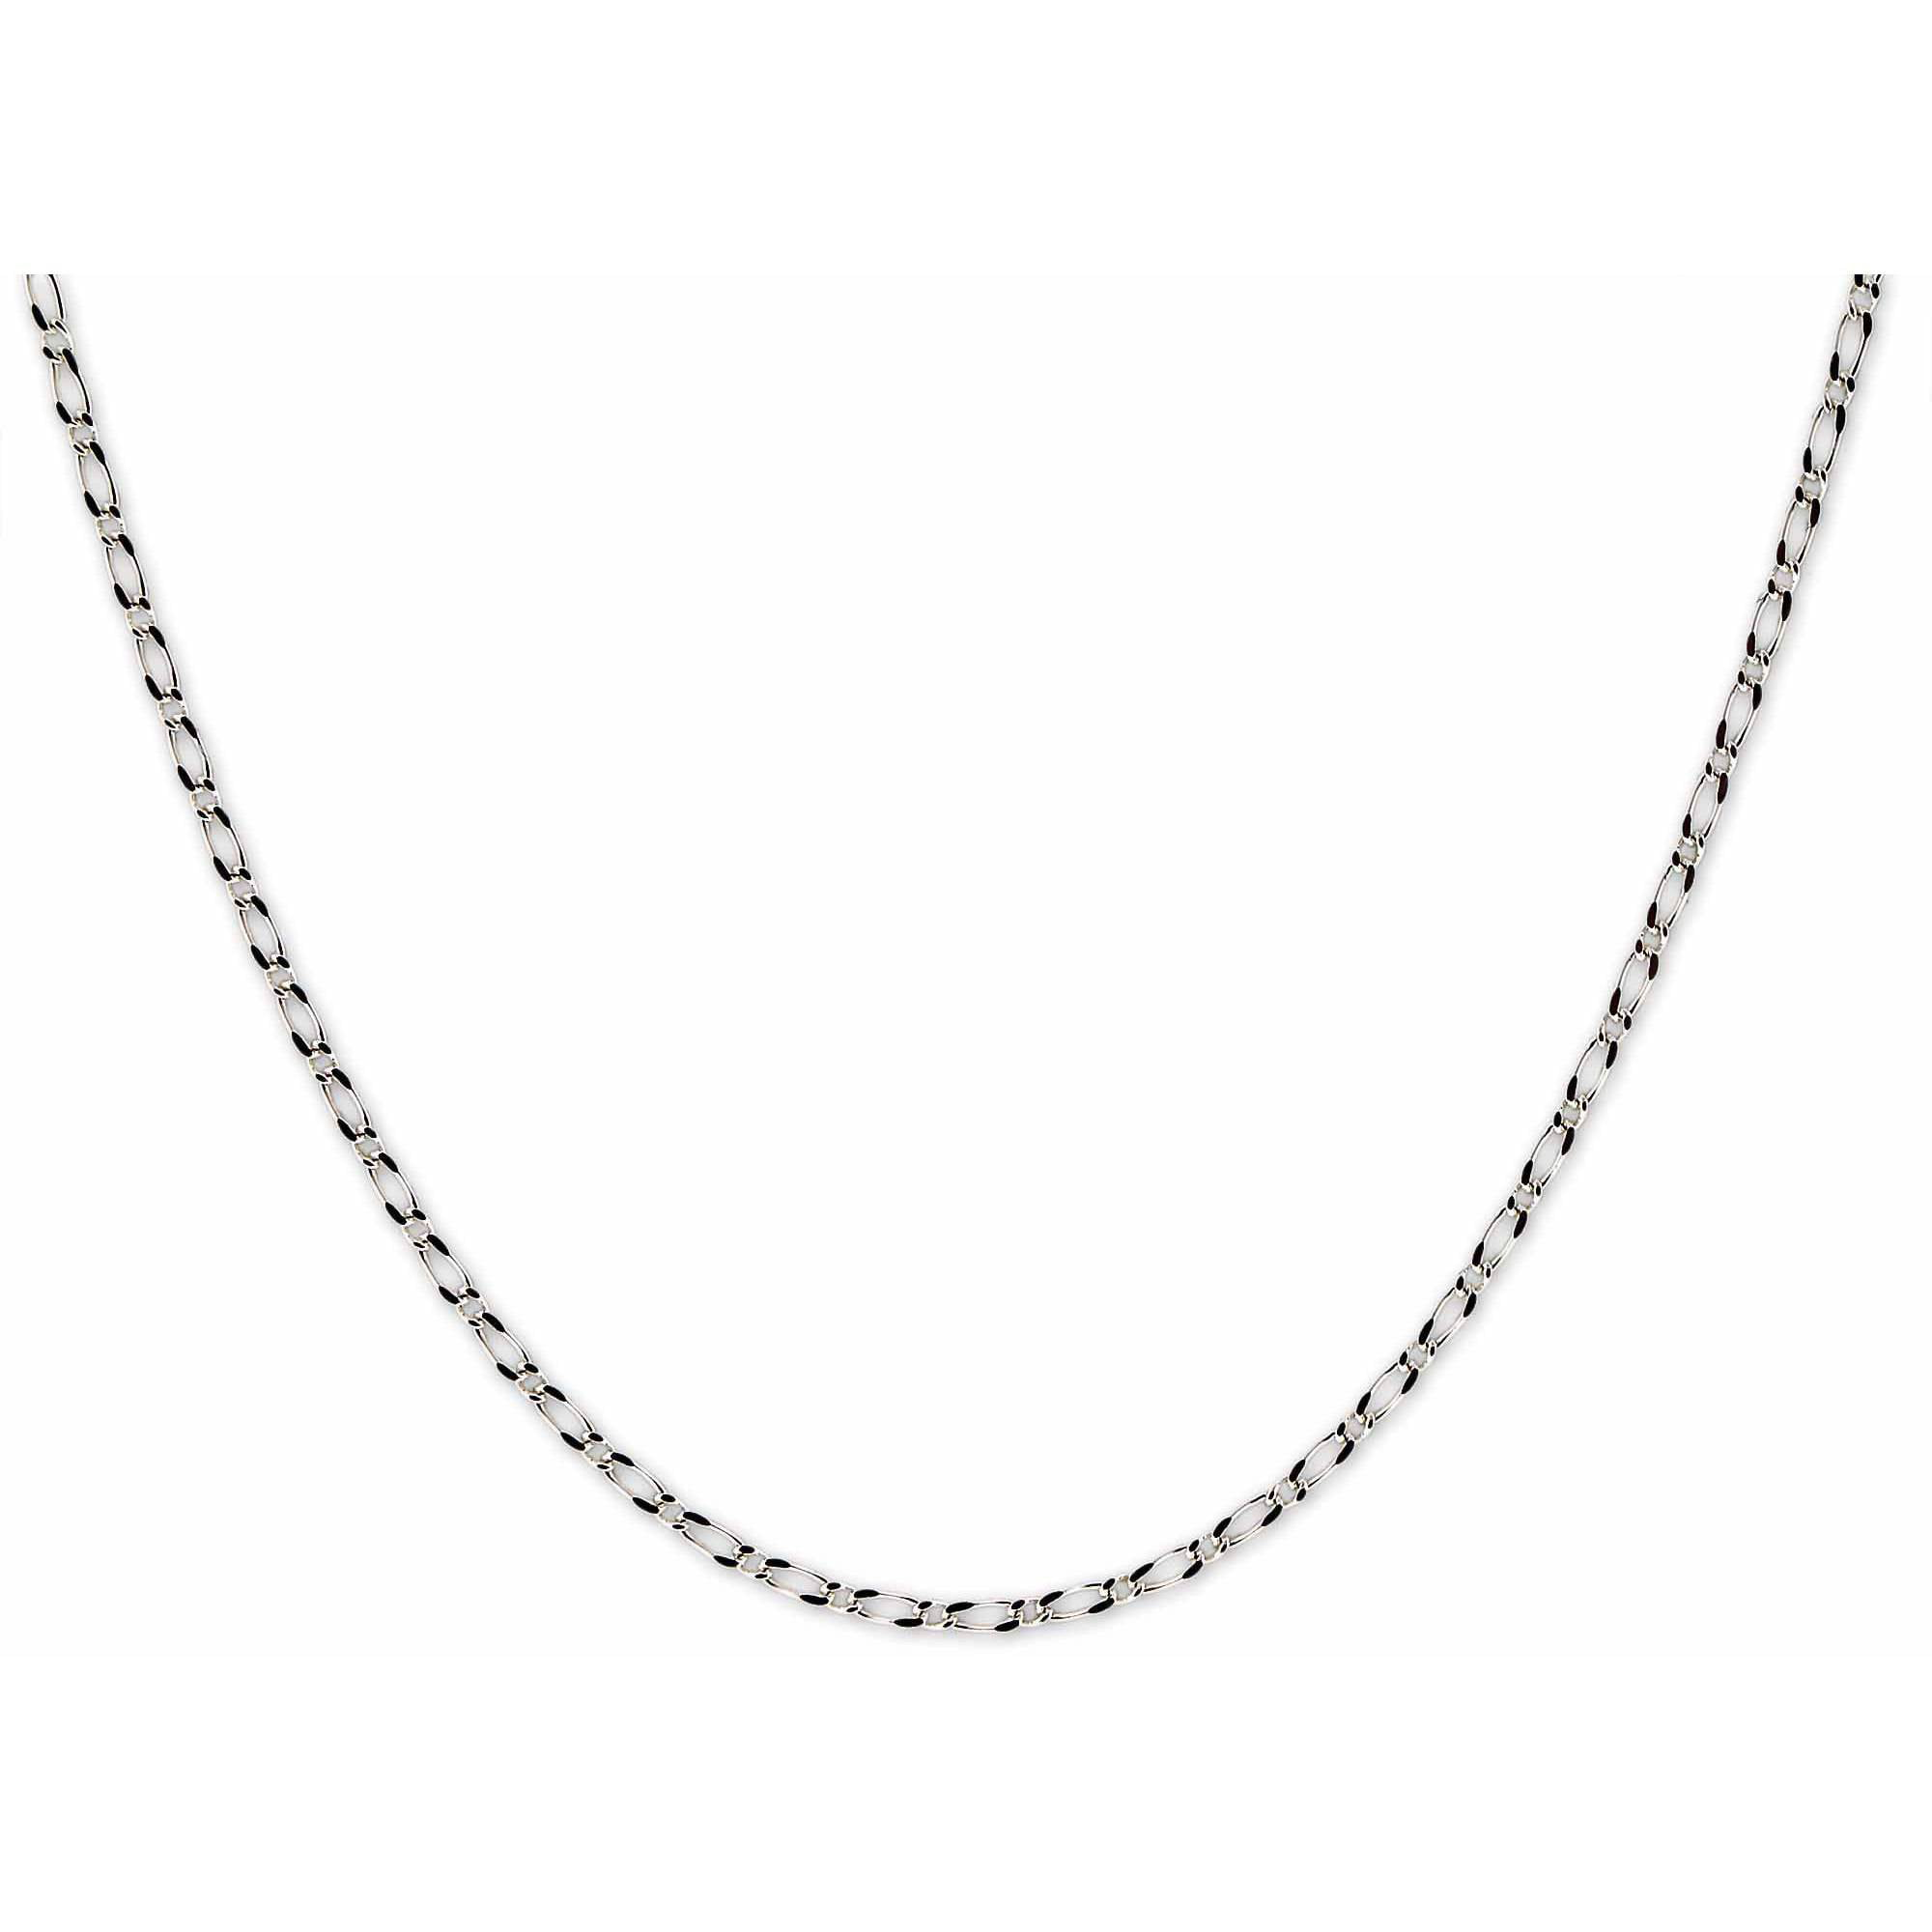 women men statement sterling for from item chain pure silver jewelry necklace necklaces in thai